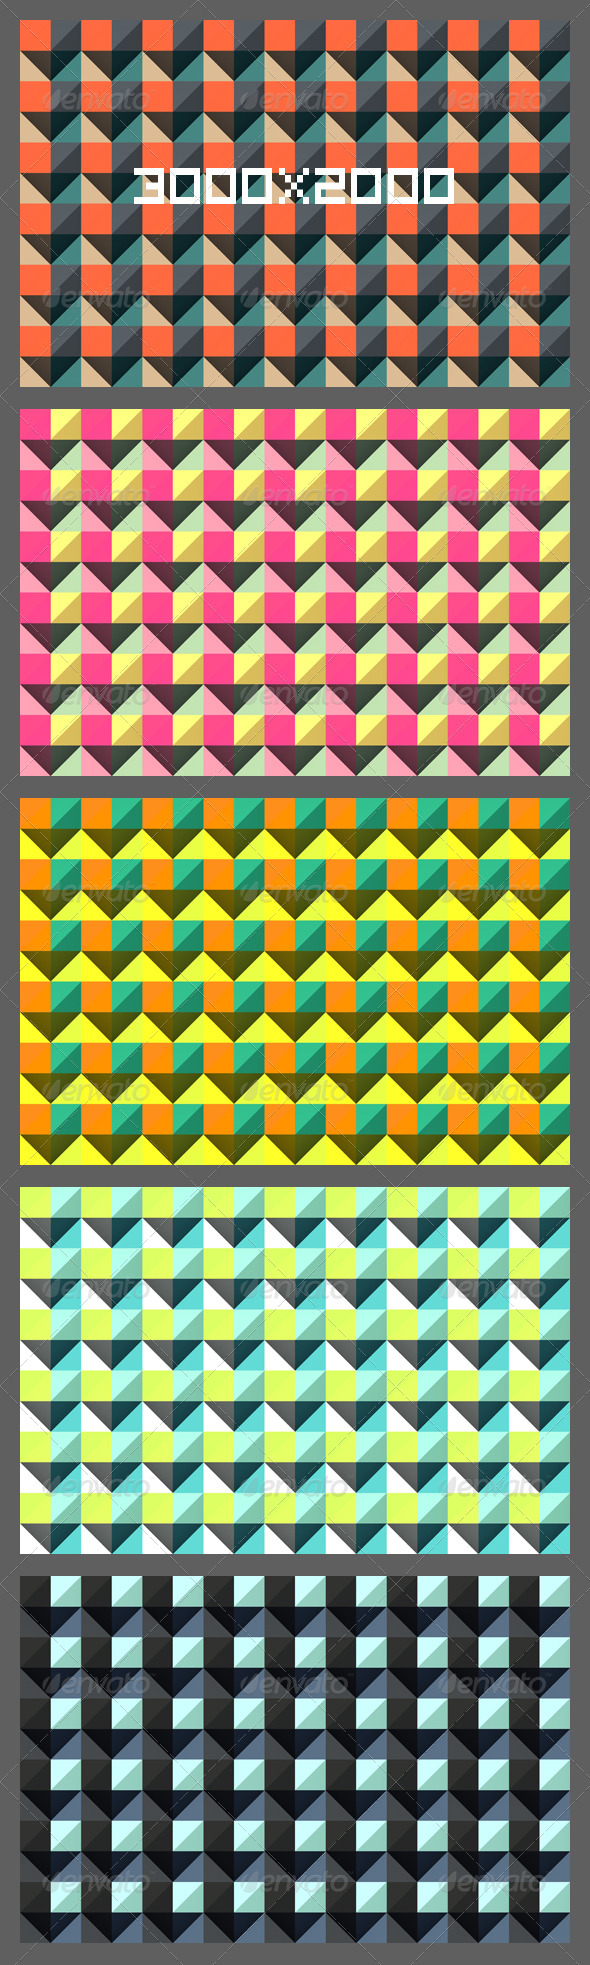 Geometric Background - Backgrounds Graphics